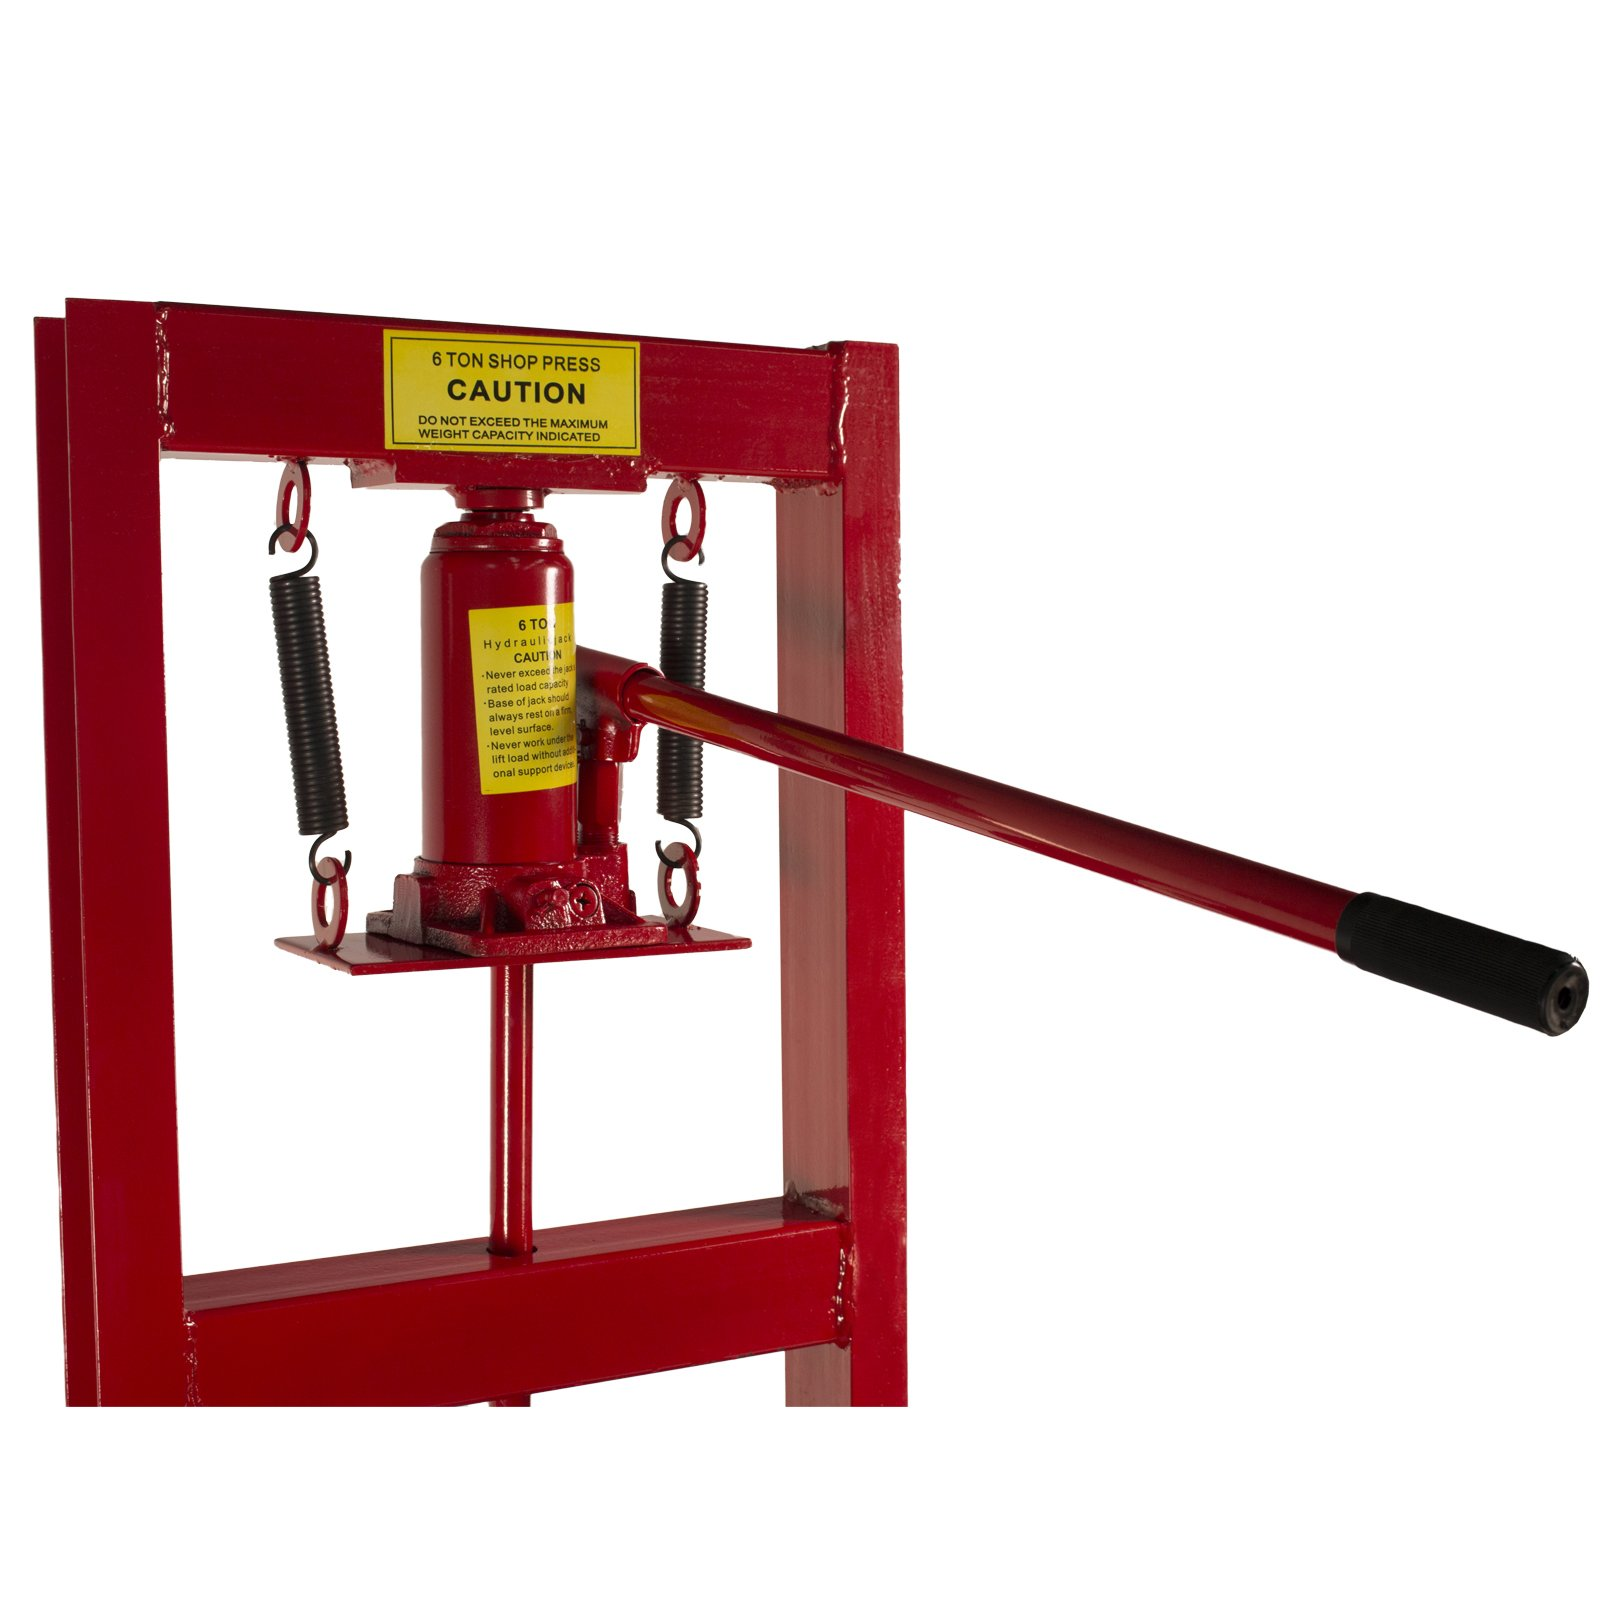 Dragway Tools 6-Ton Hydraulic Shop Floor Press with Press Plates and H Frame is Ideal for Gears and Bearings by Dragway Tools (Image #4)